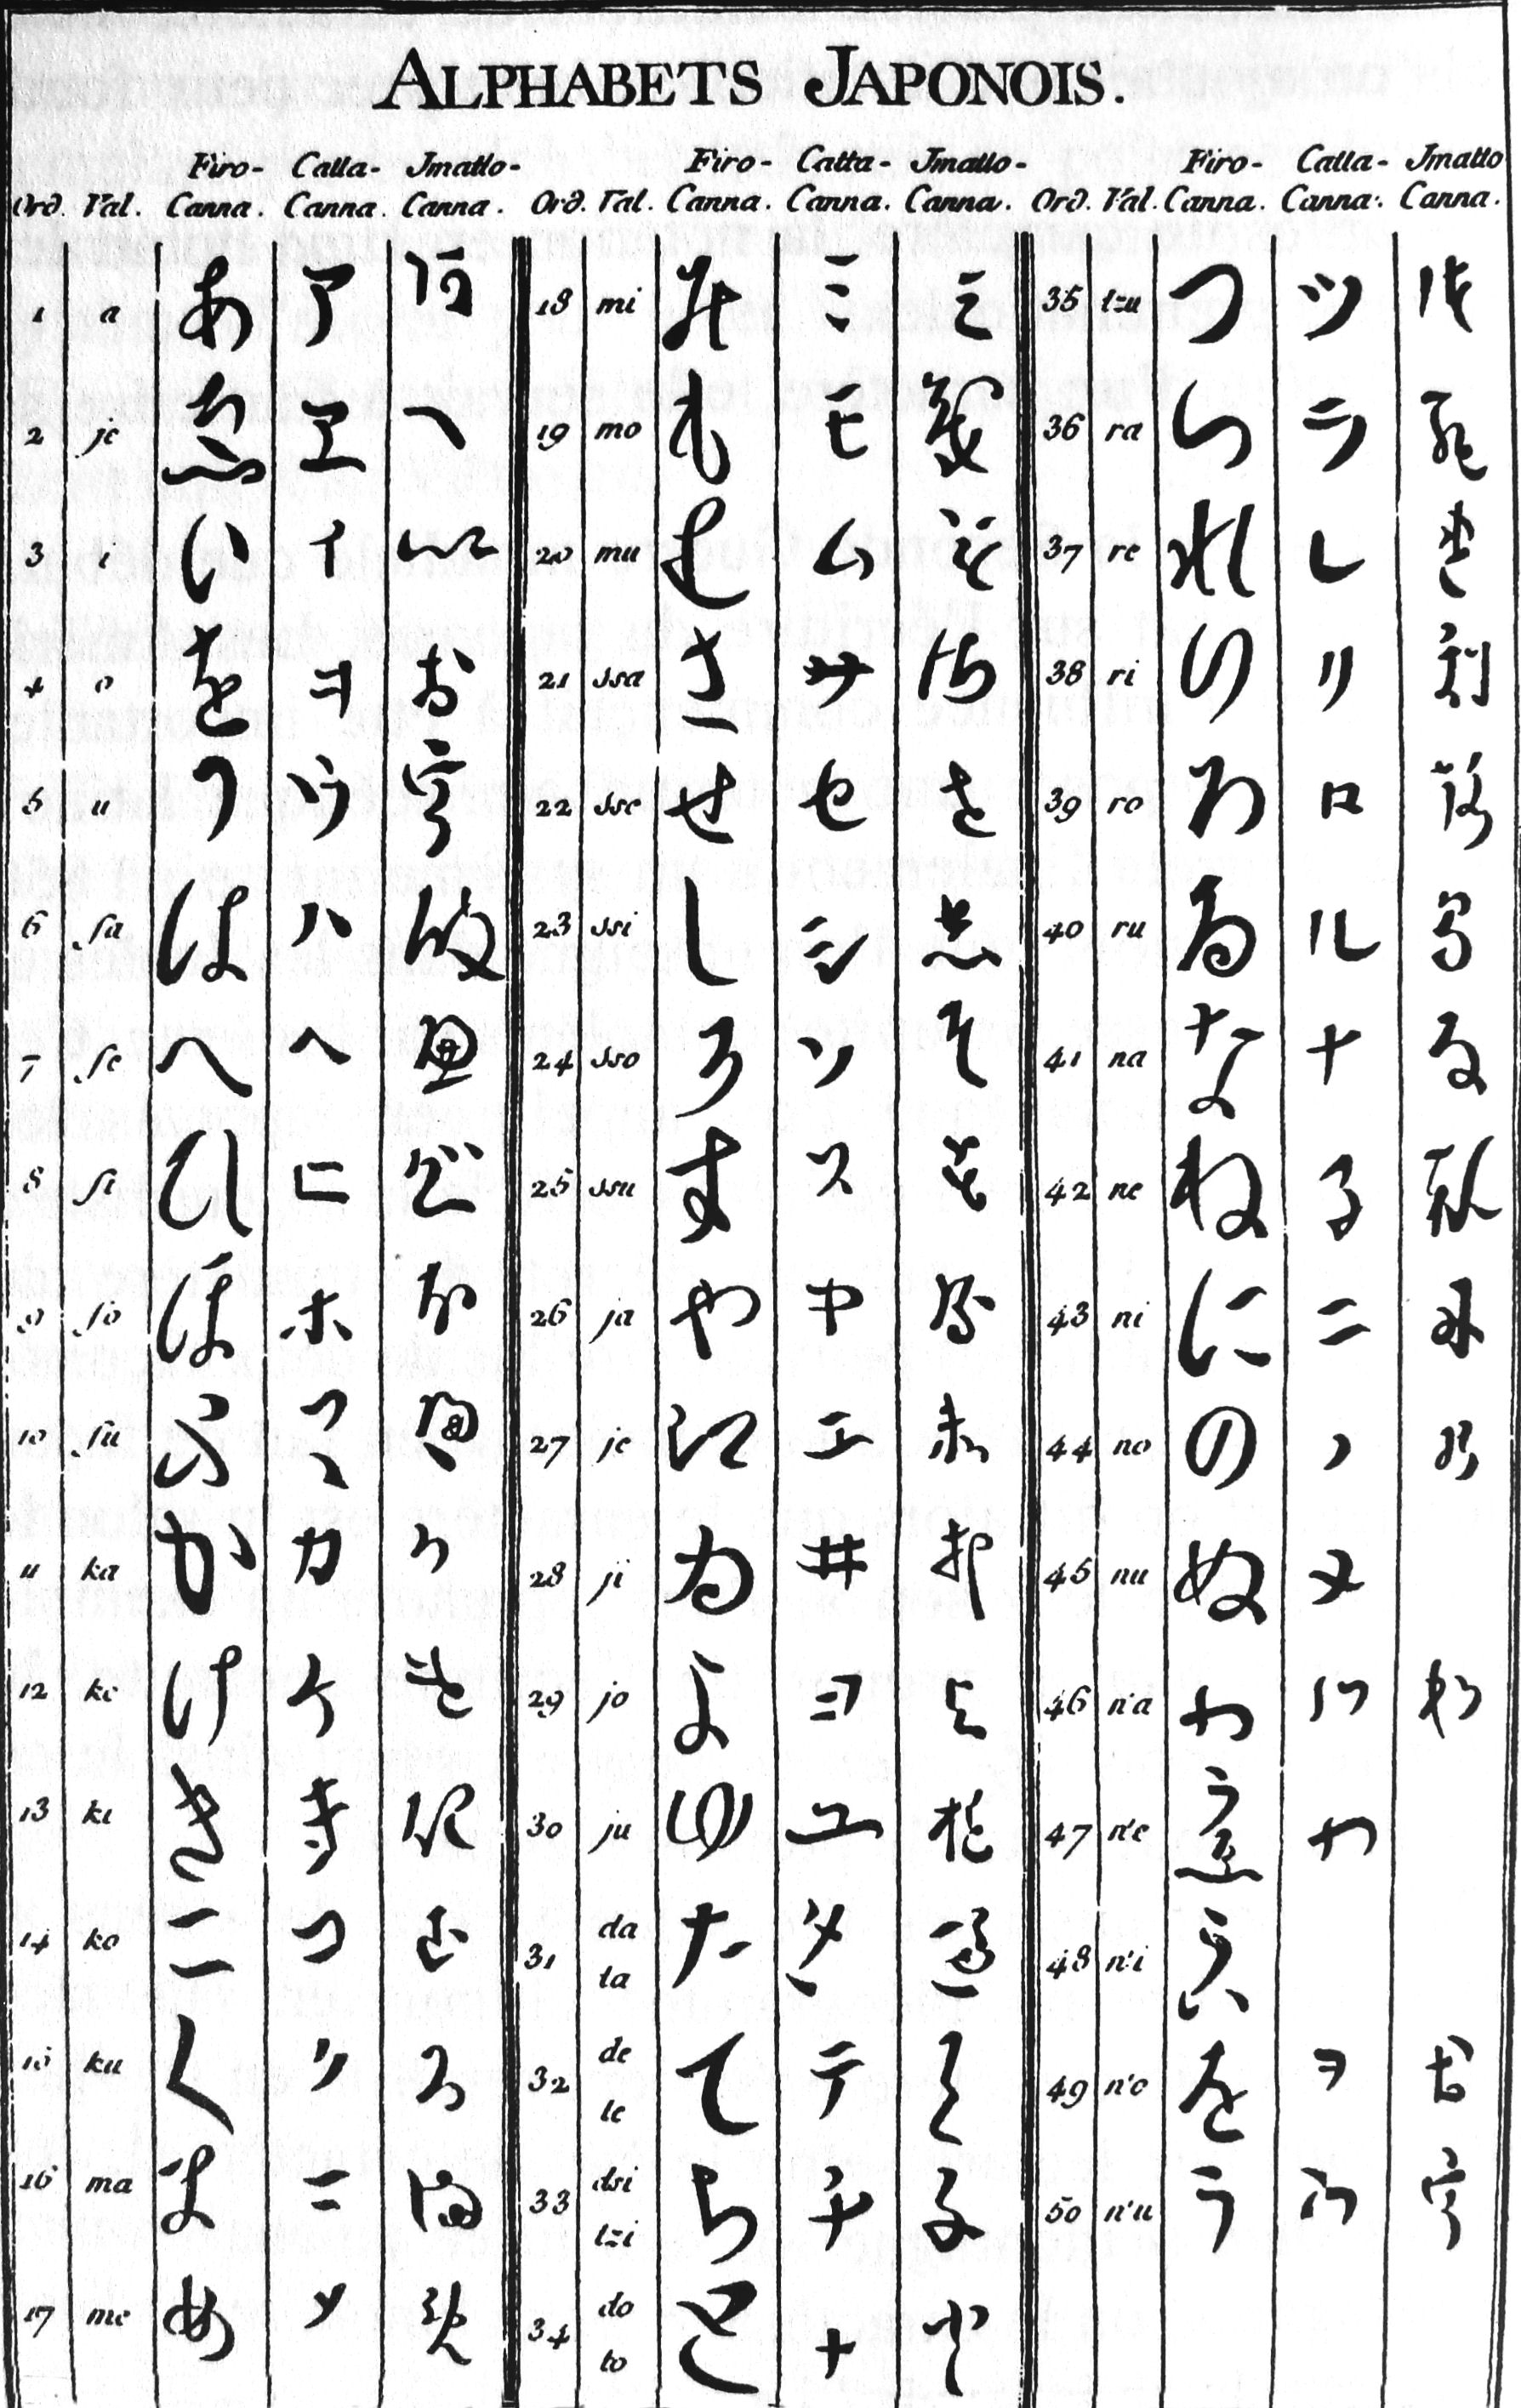 Description Japanese alphabet Diderot Encyclopedia 18th century.jpg